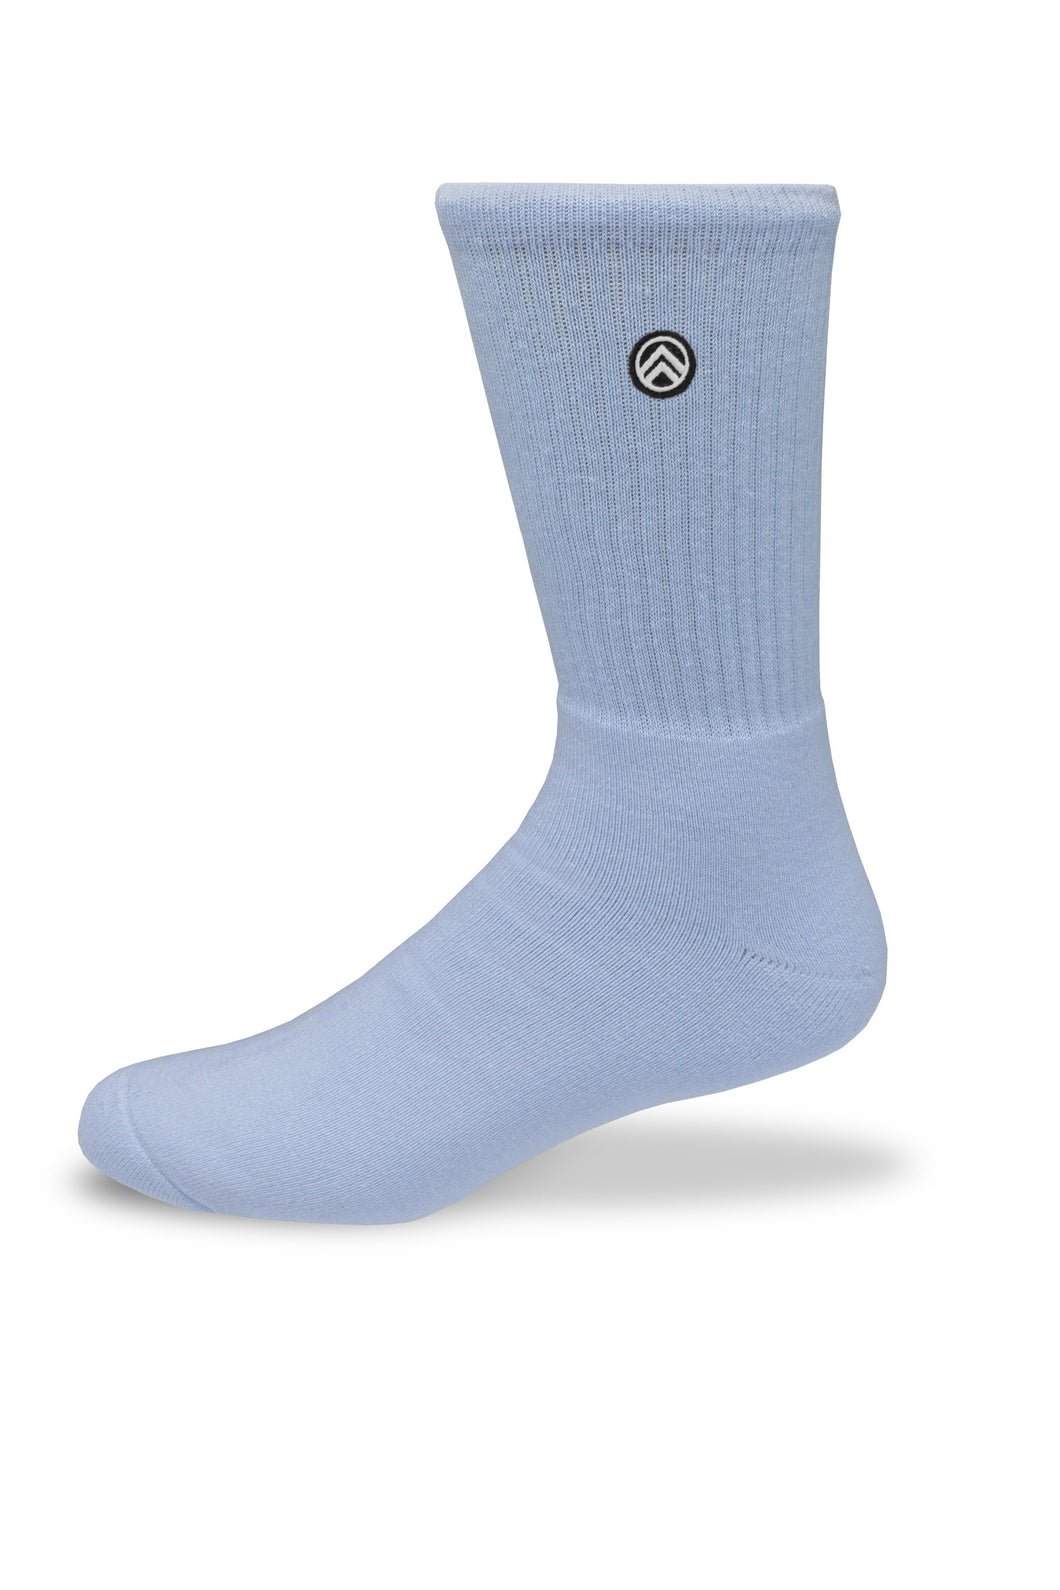 Sky Footwear Socks, Solid Blue